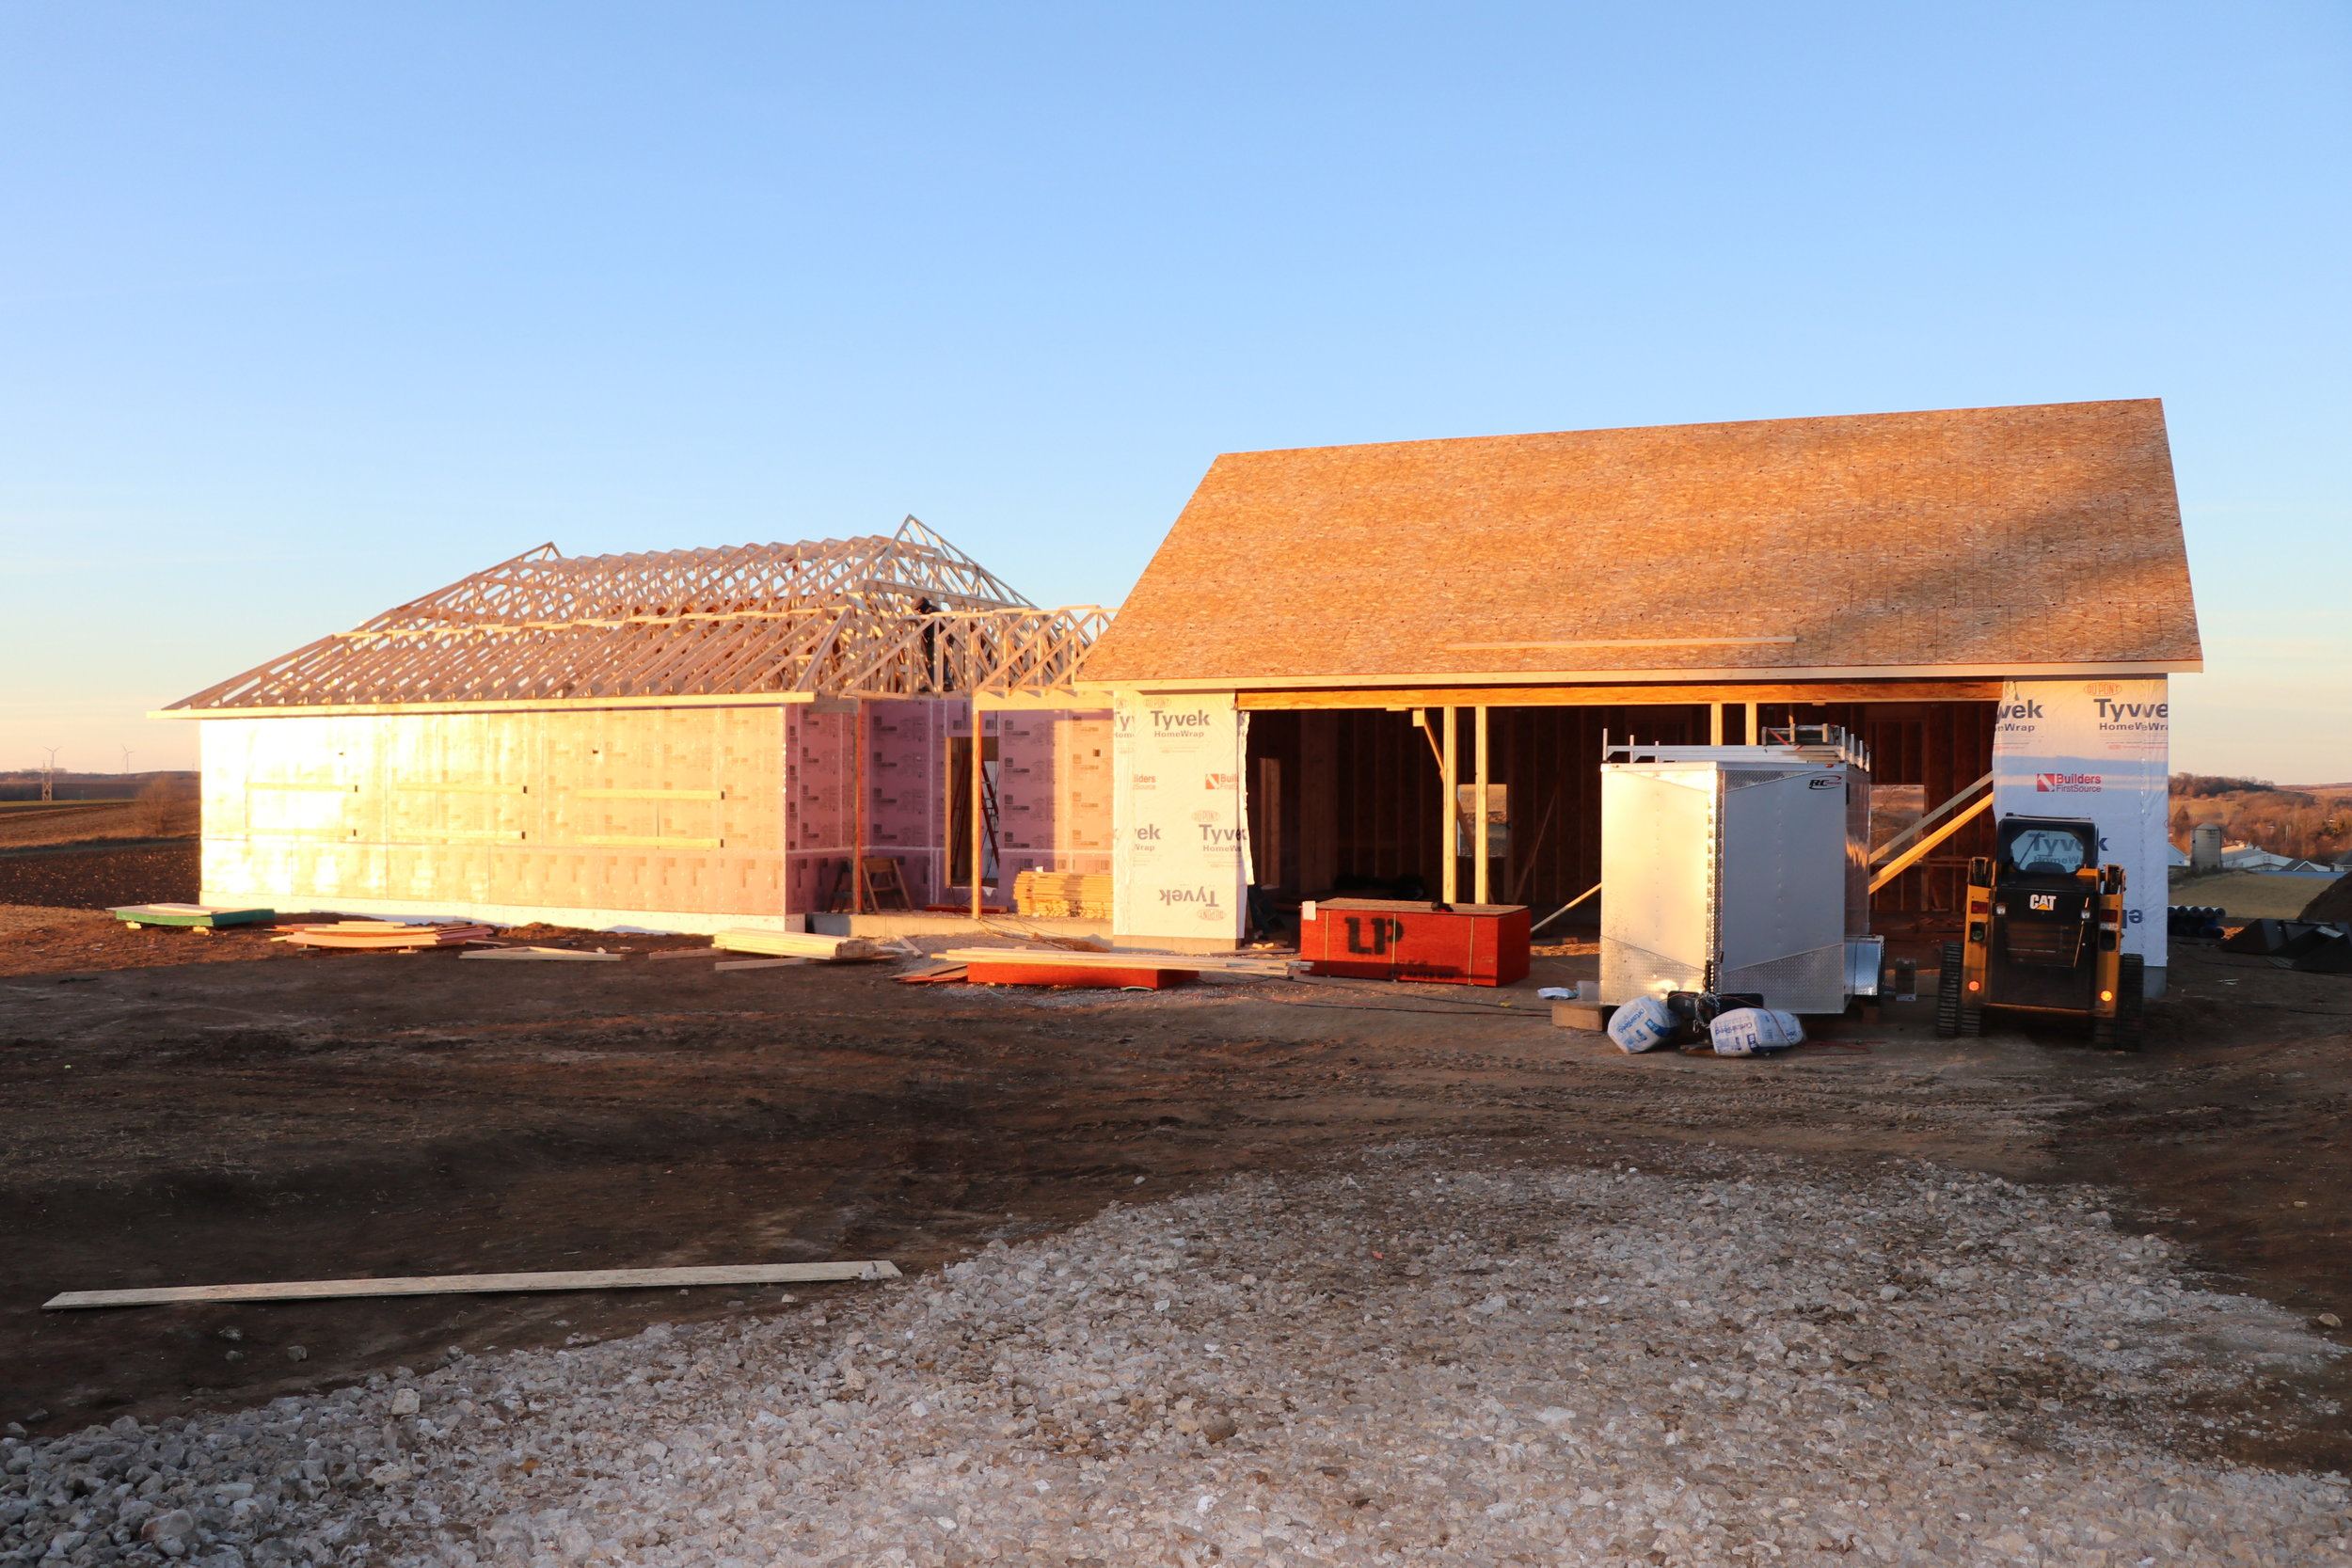 The front of the house is taking shape